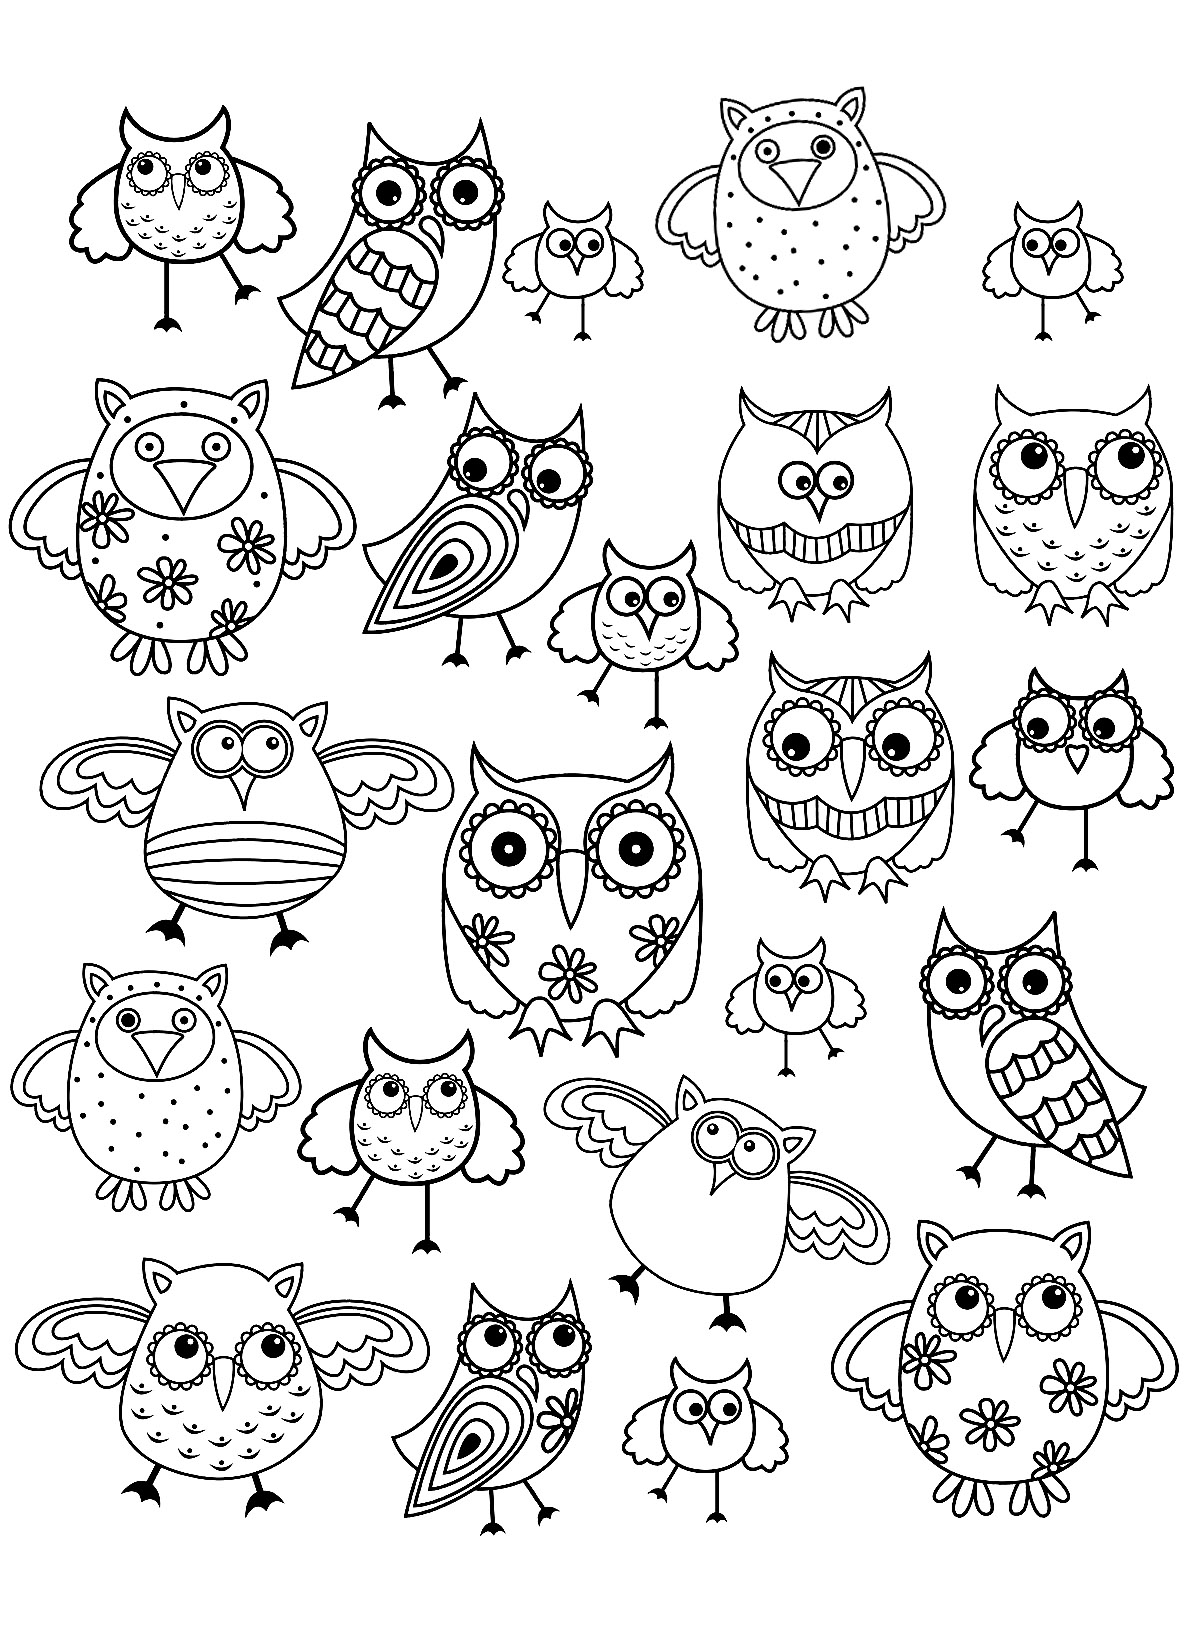 Doodle art to color for kids - Doodle Art - Coloring pages for kids